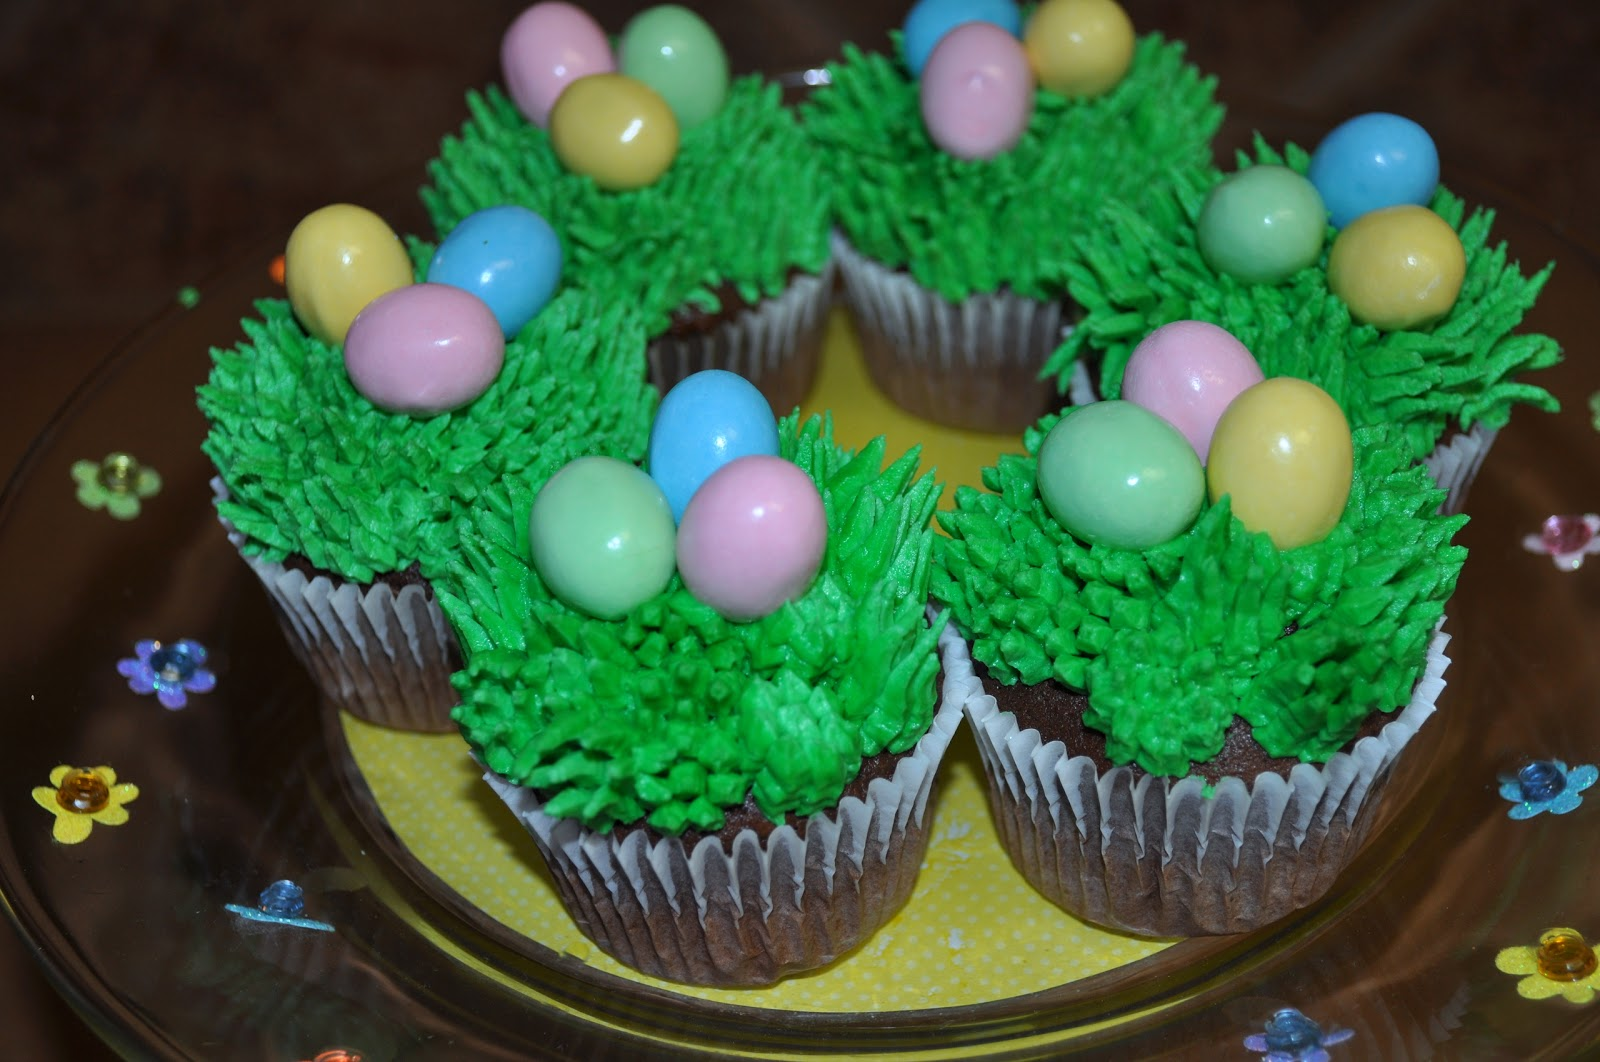 Easter on pinterest easter baskets easter cupcakes and for Cute cupcake decorating ideas for easter